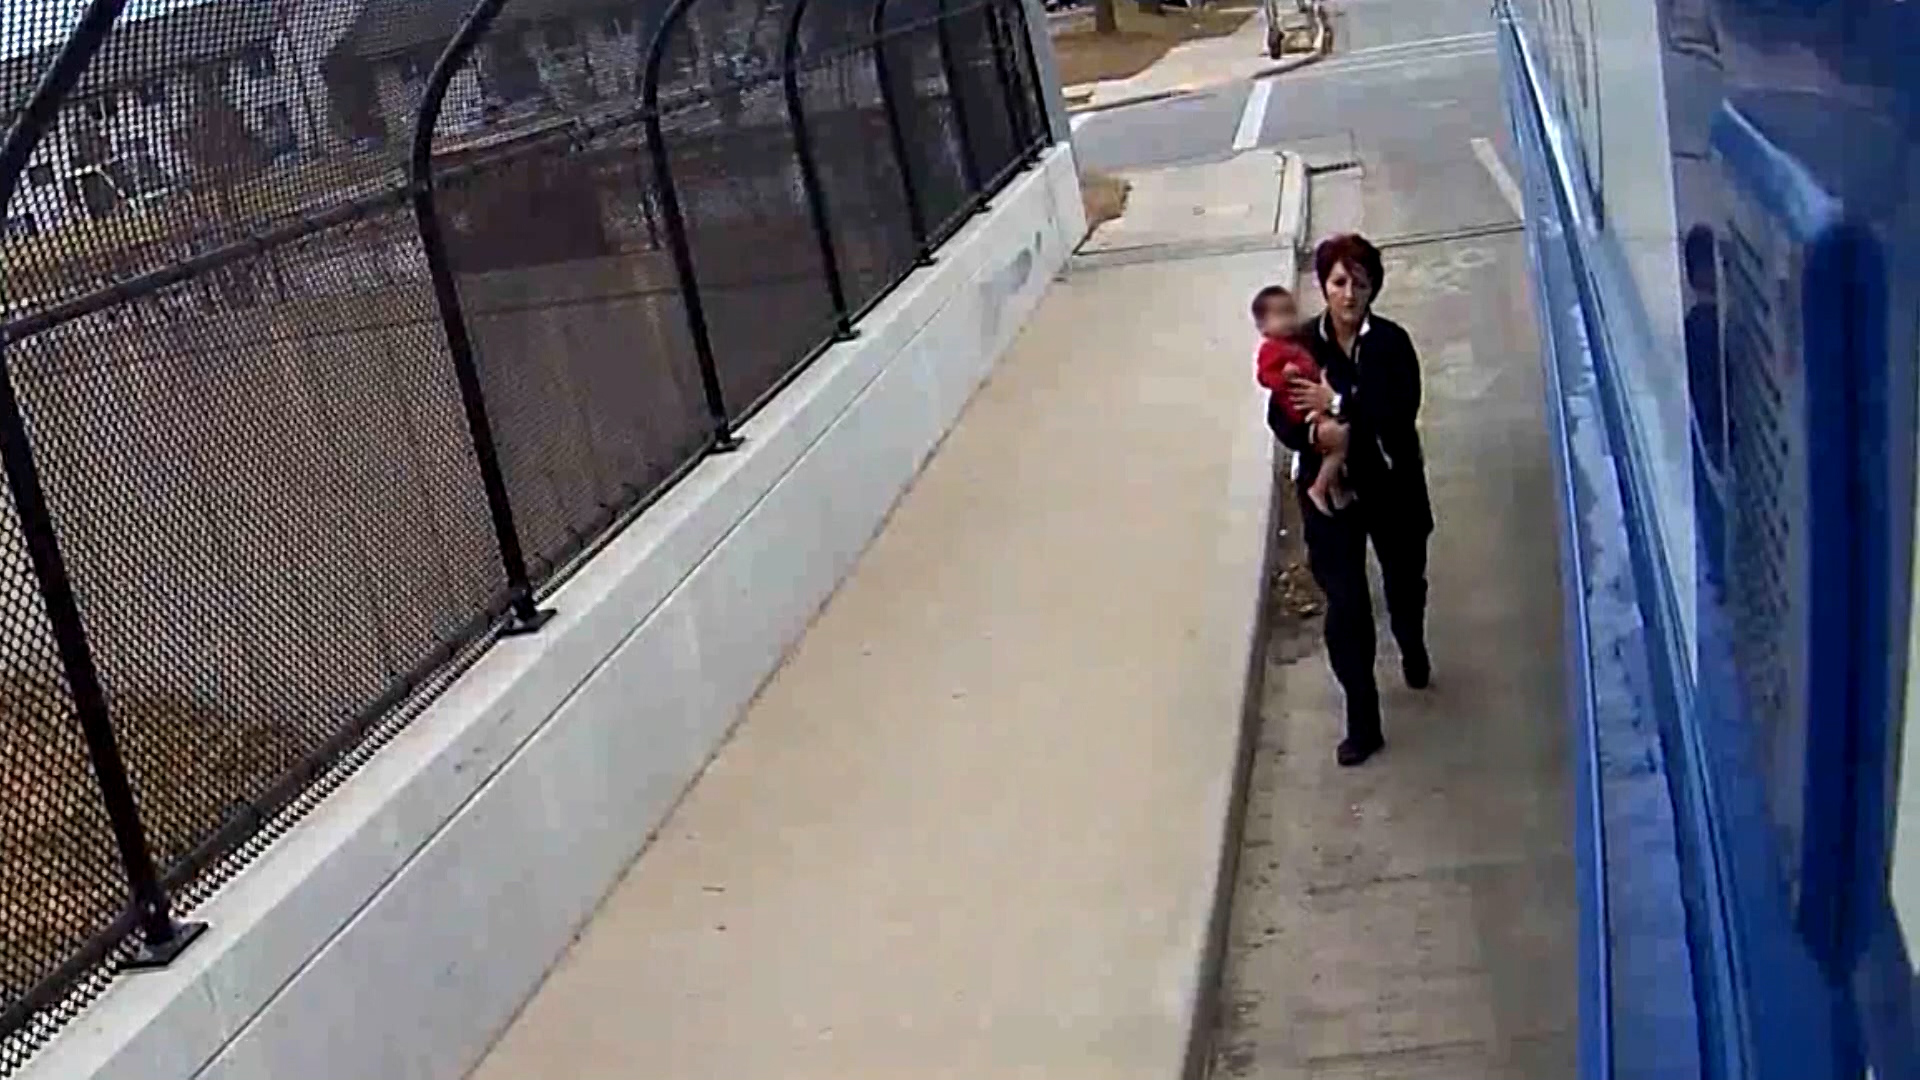 Bus driver rescues toddler wandering on USA  overpass in freezing conditions